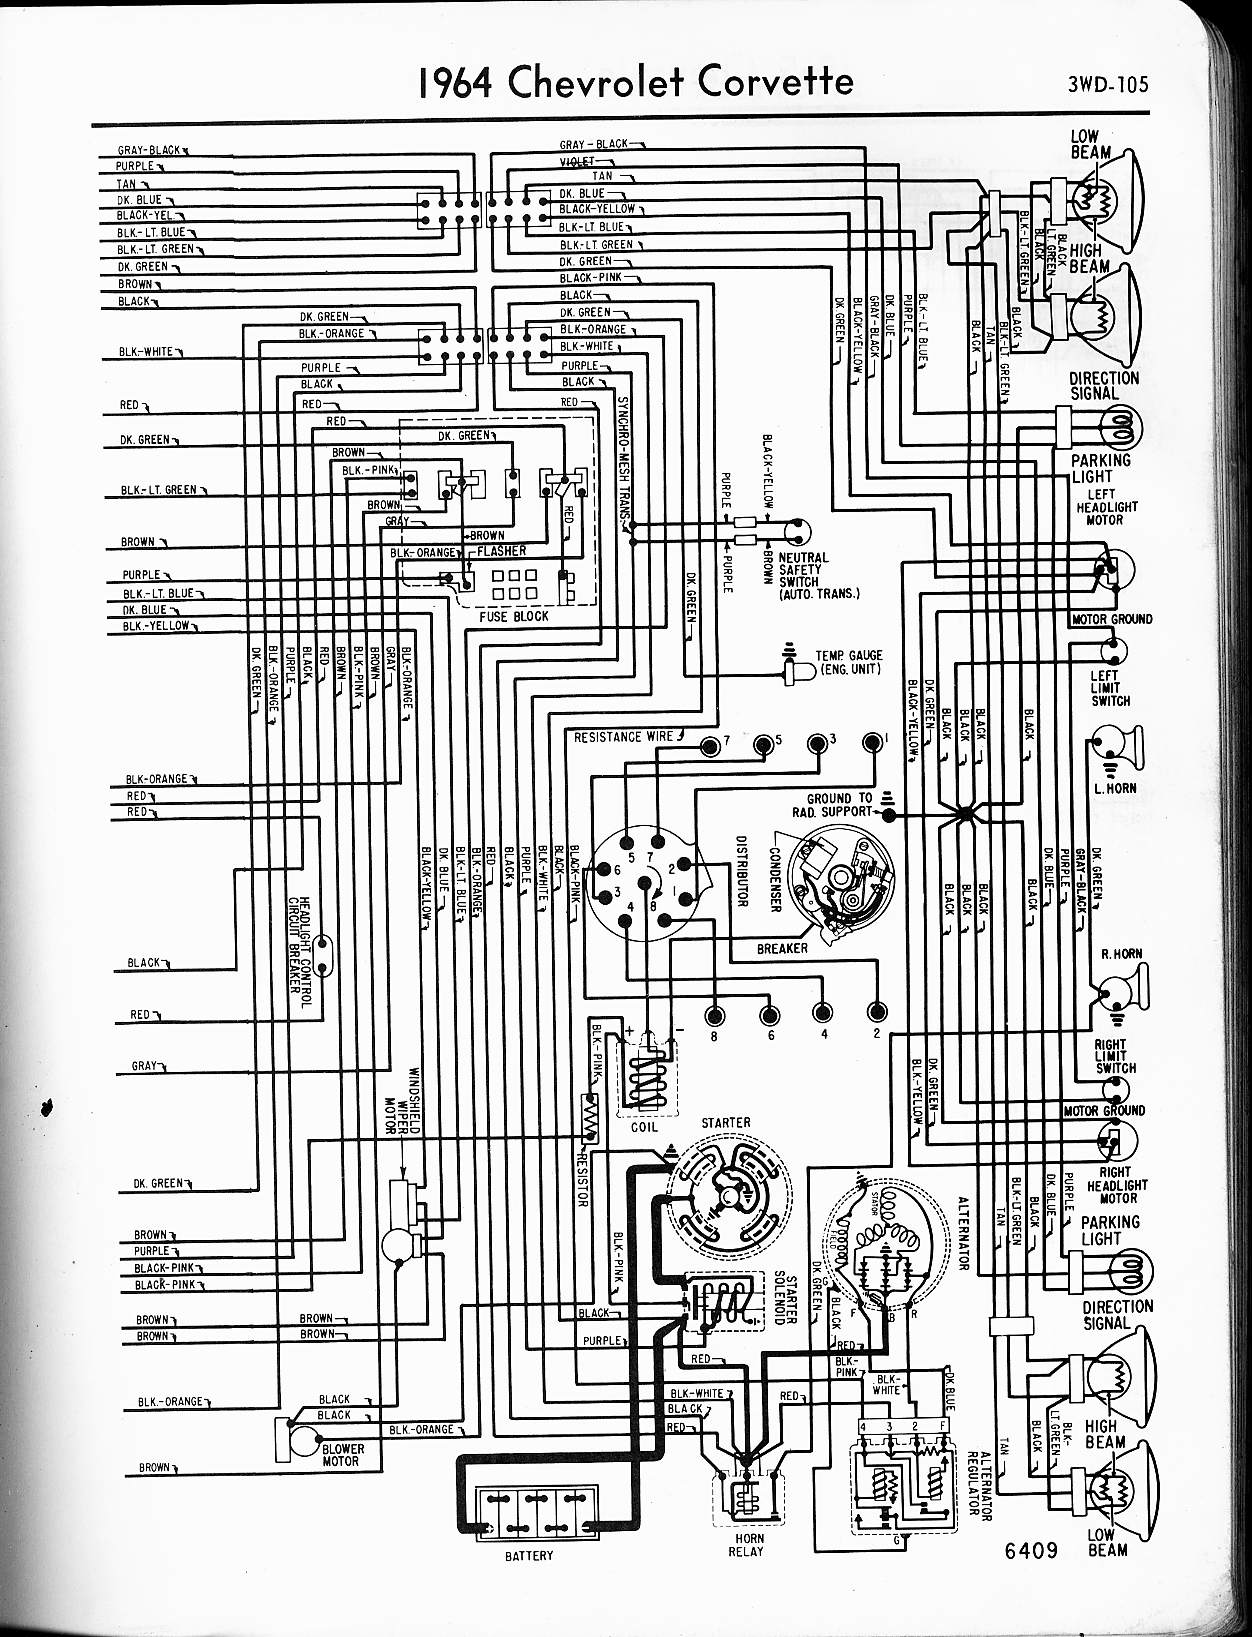 1965 Chevy Corvette Wiring Diagram Data 2006 Aveo In Addition Impala On 1964 Harness